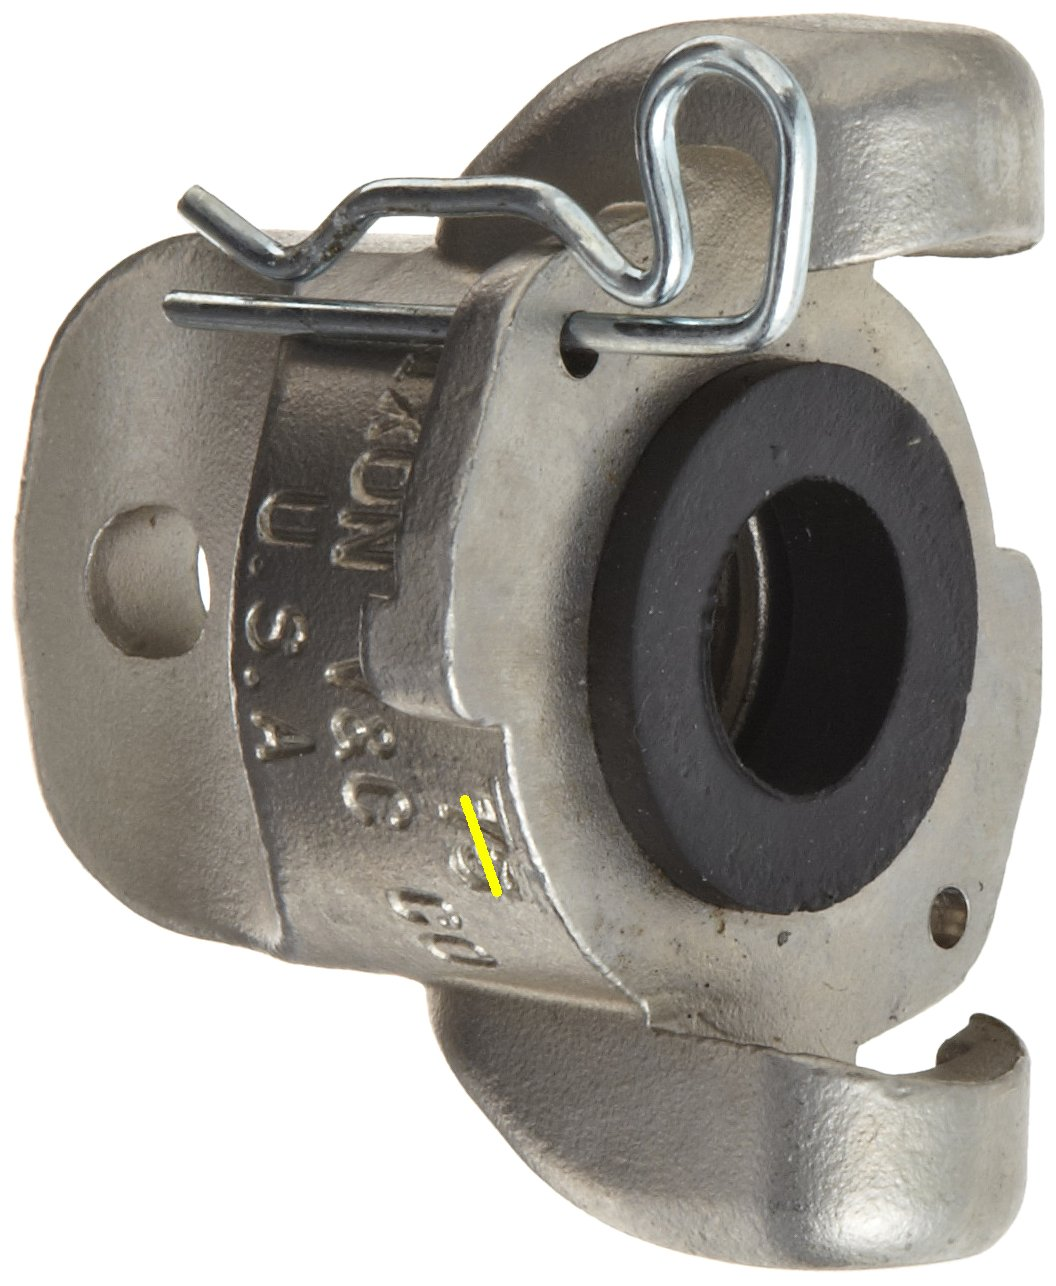 2 Lug Universal Coupling with Blank End Dixon Air King RAM0 Stainless Steel 316 Air Hose Fitting